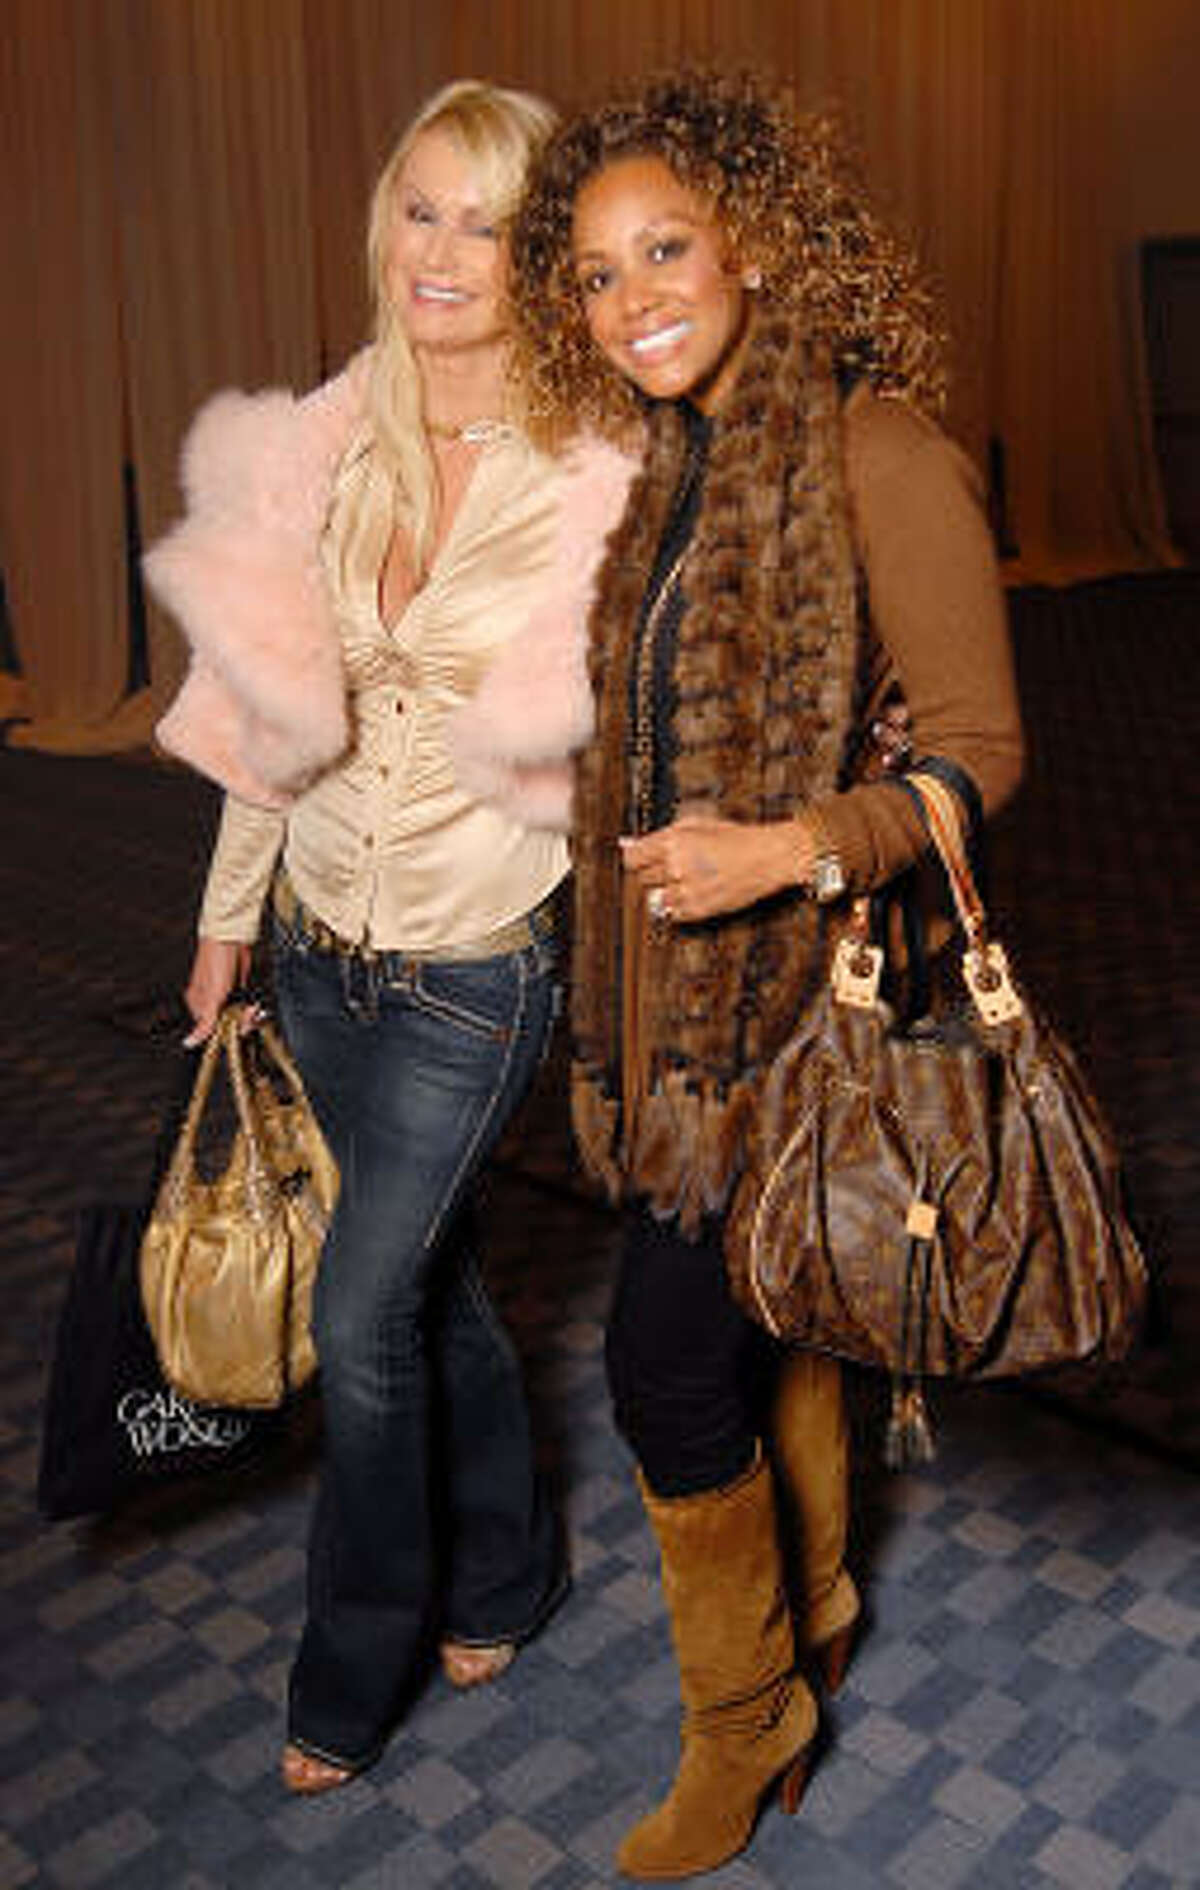 Hege Jessen and Kym Jackson at the Saks Fifth Avenue Fashion Show and Luncheon at the Nutcracker Market.